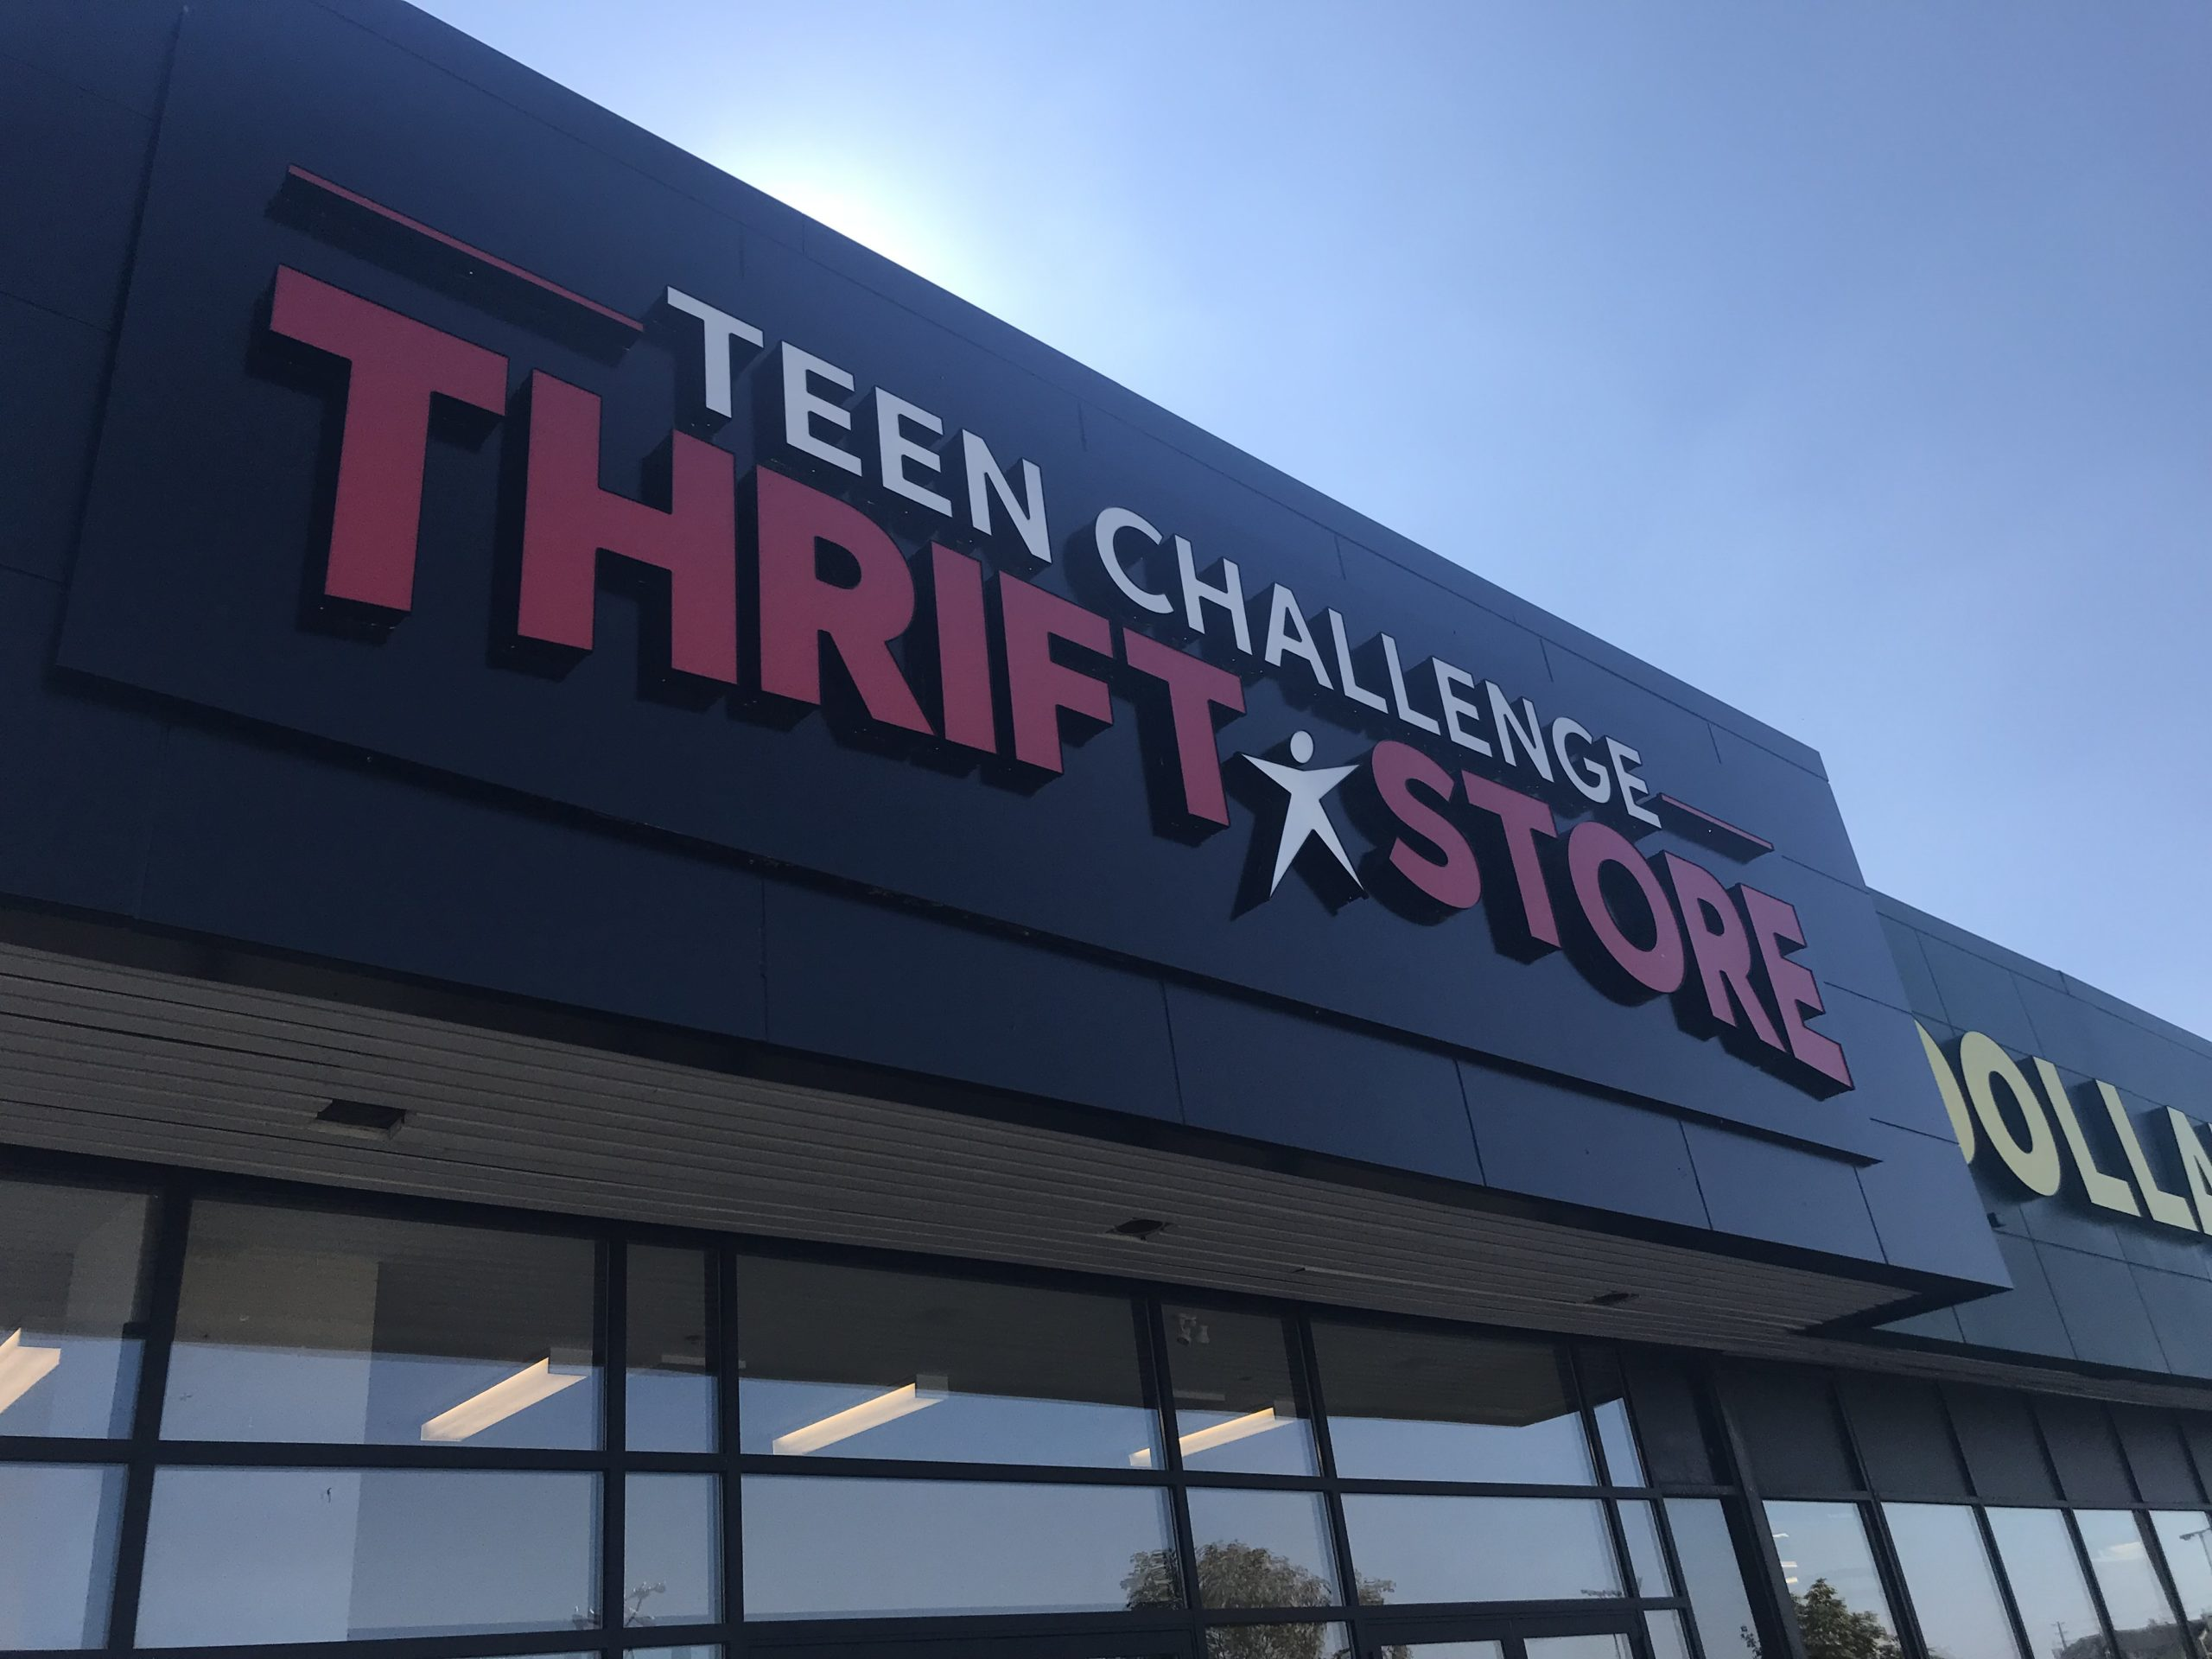 Teen Challenge opens their first Thrift Store in Canada